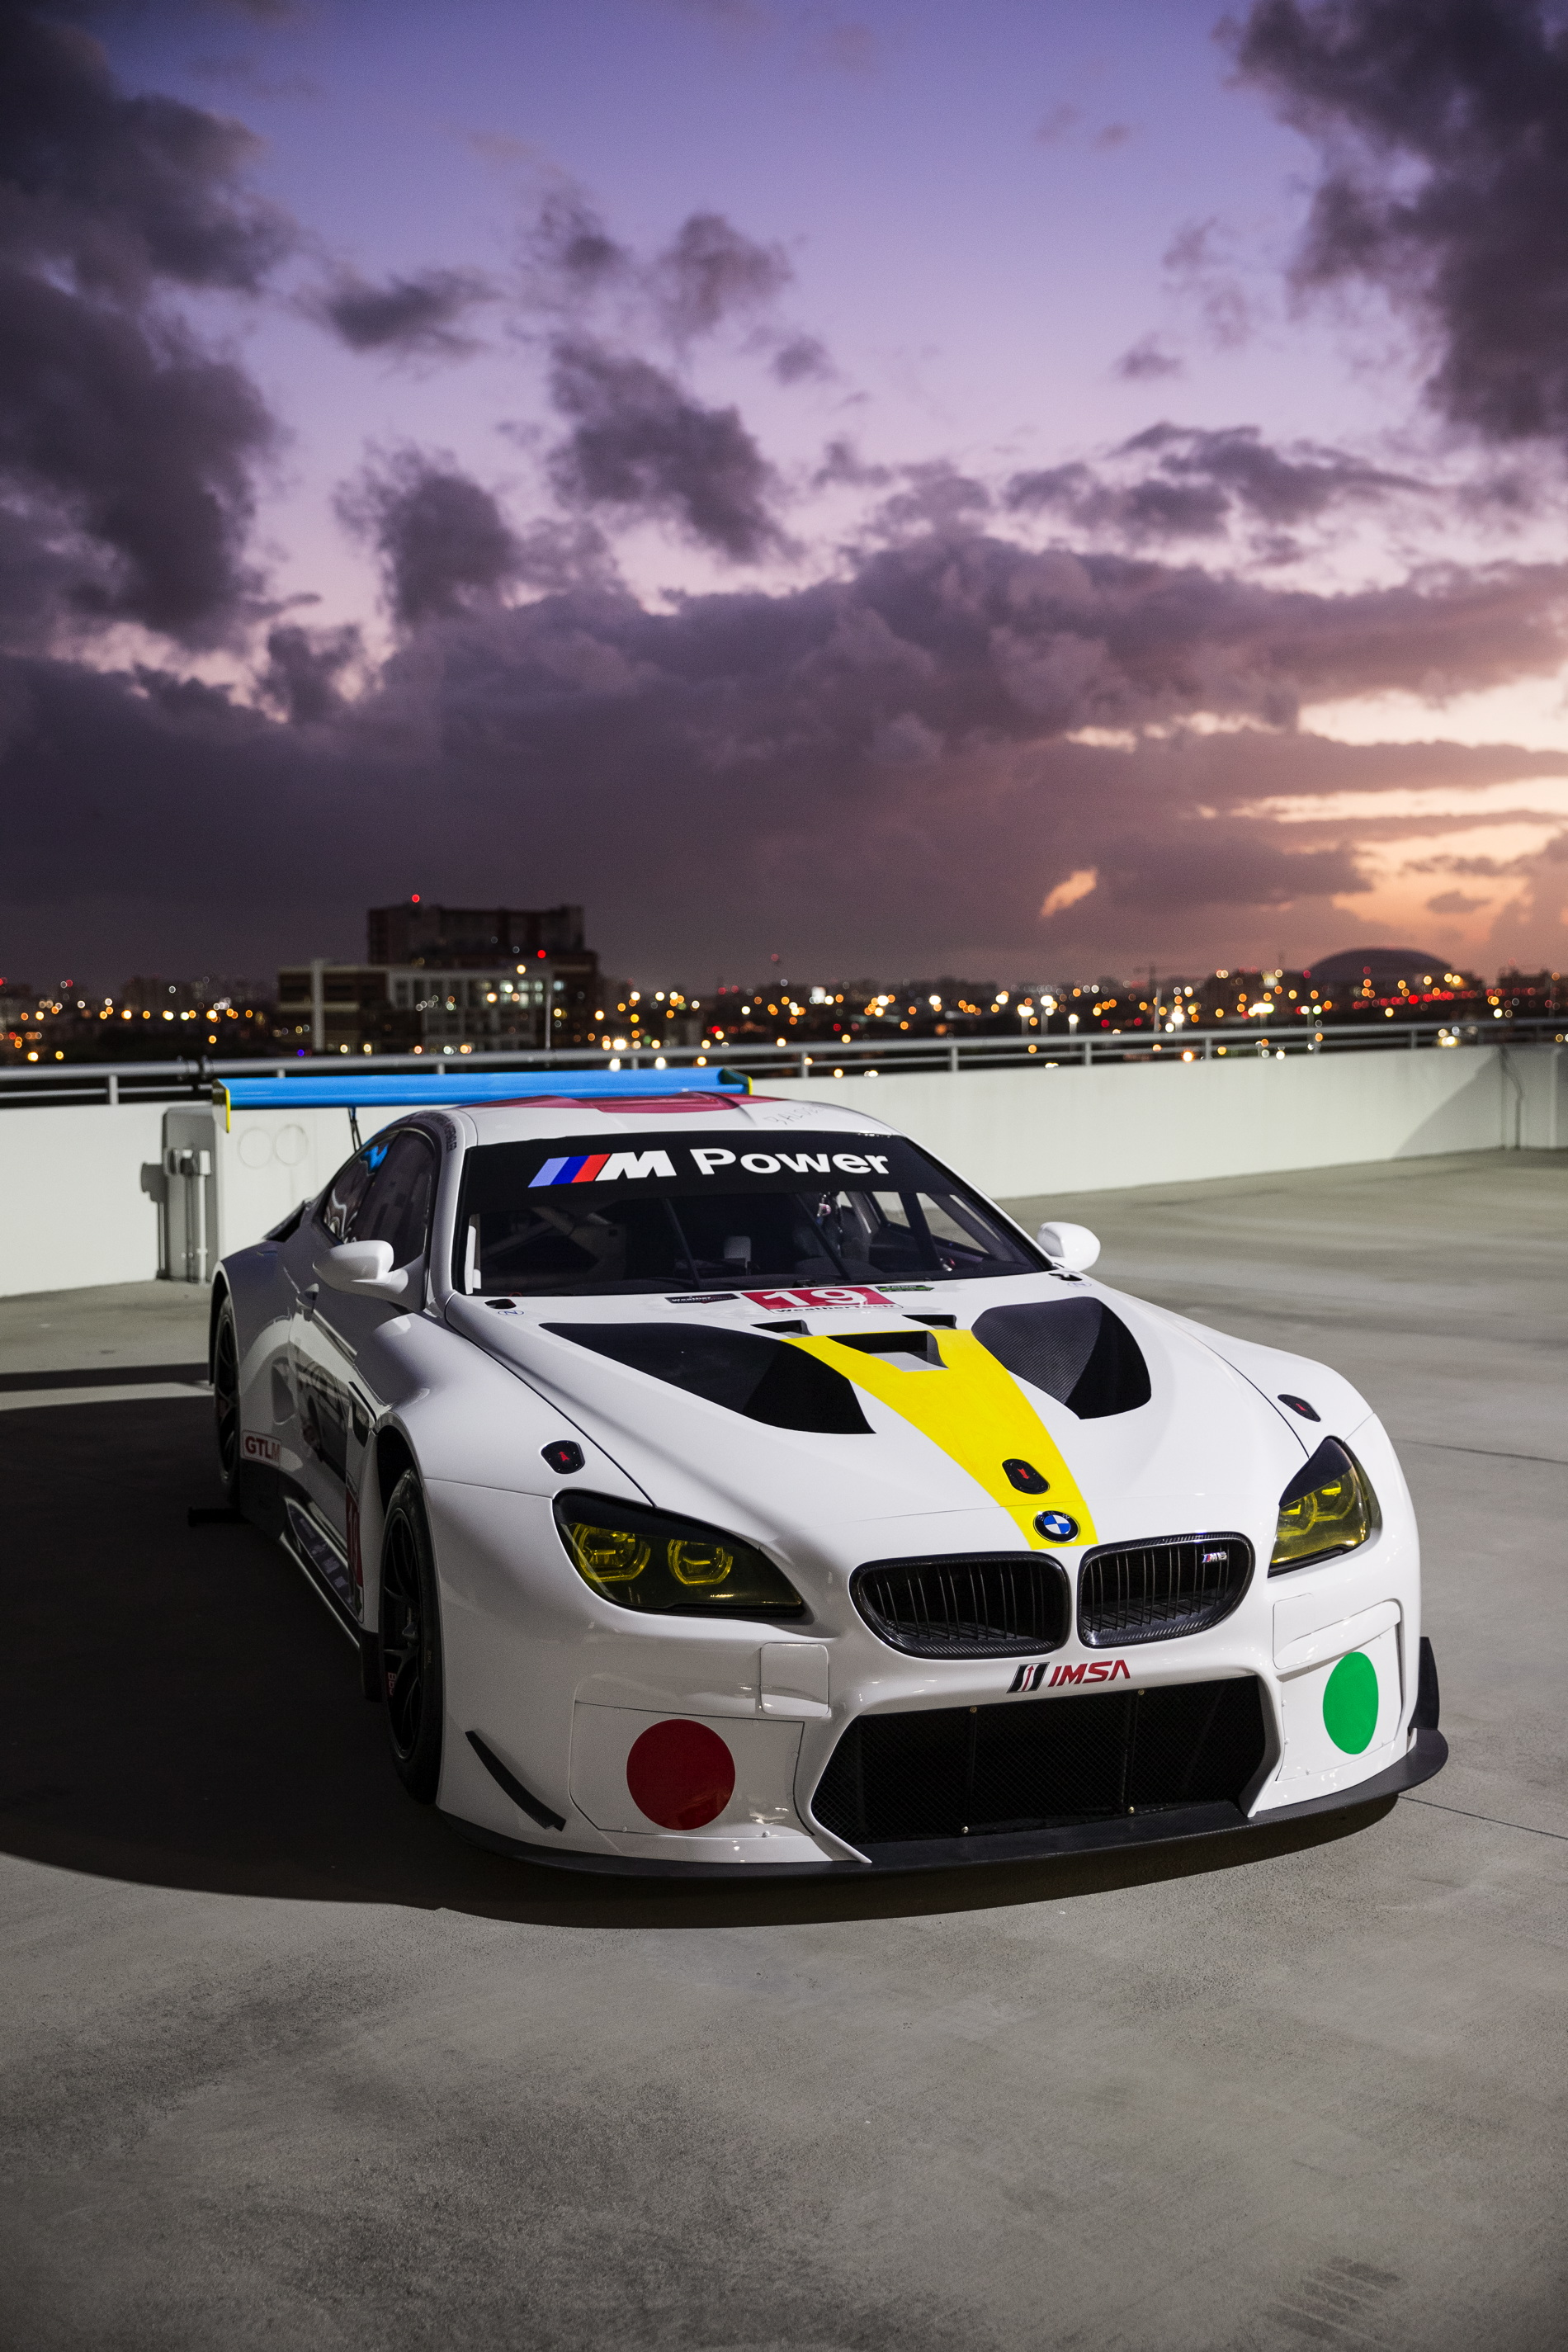 New Bmw M6 Gt3 Art Car To Be Part Of History